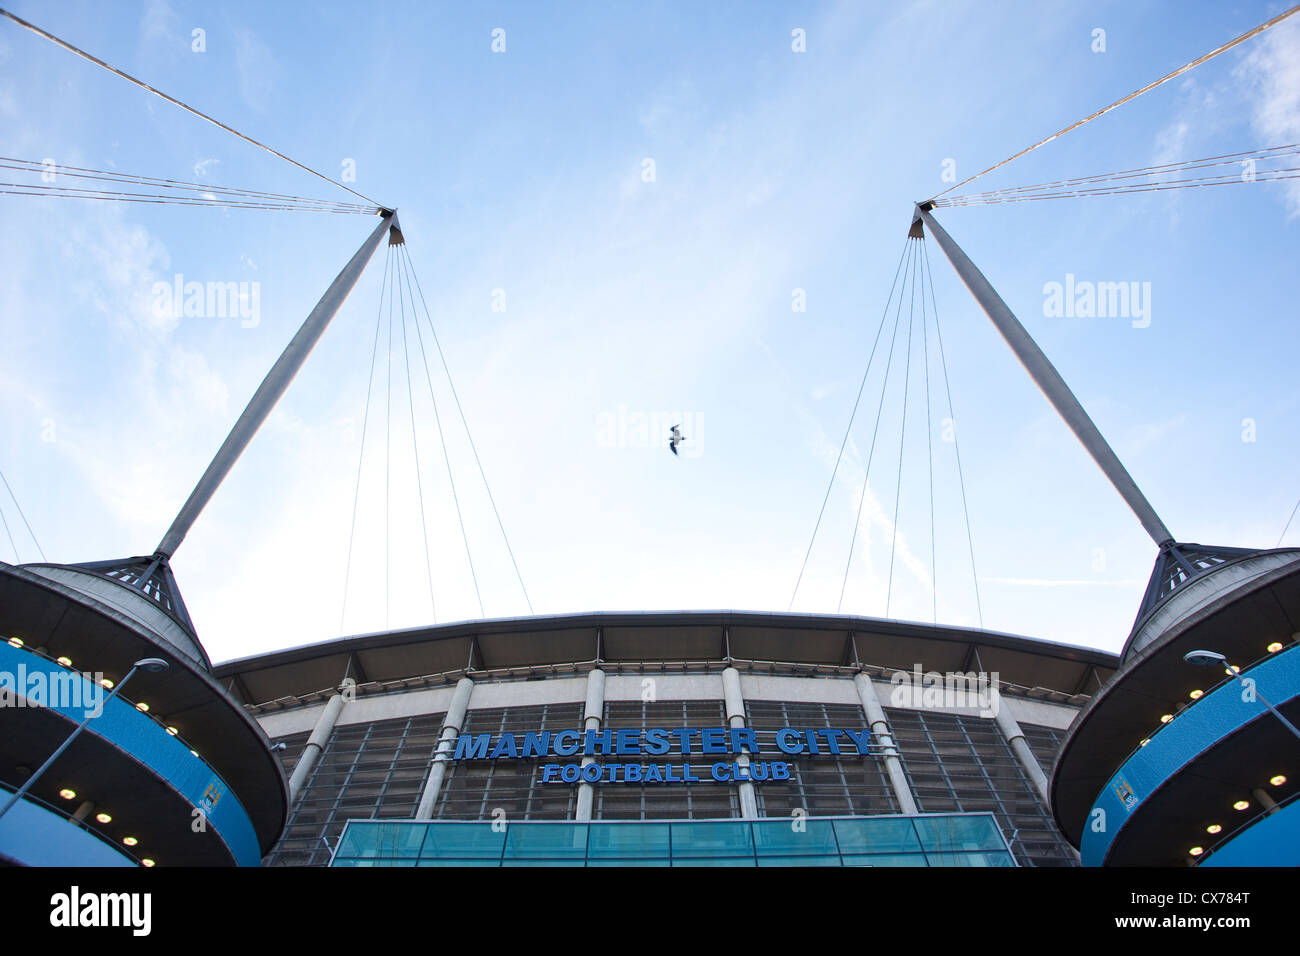 Manchester City Etihad Stadium, Manchester, England, United Kingdom - Stock Image